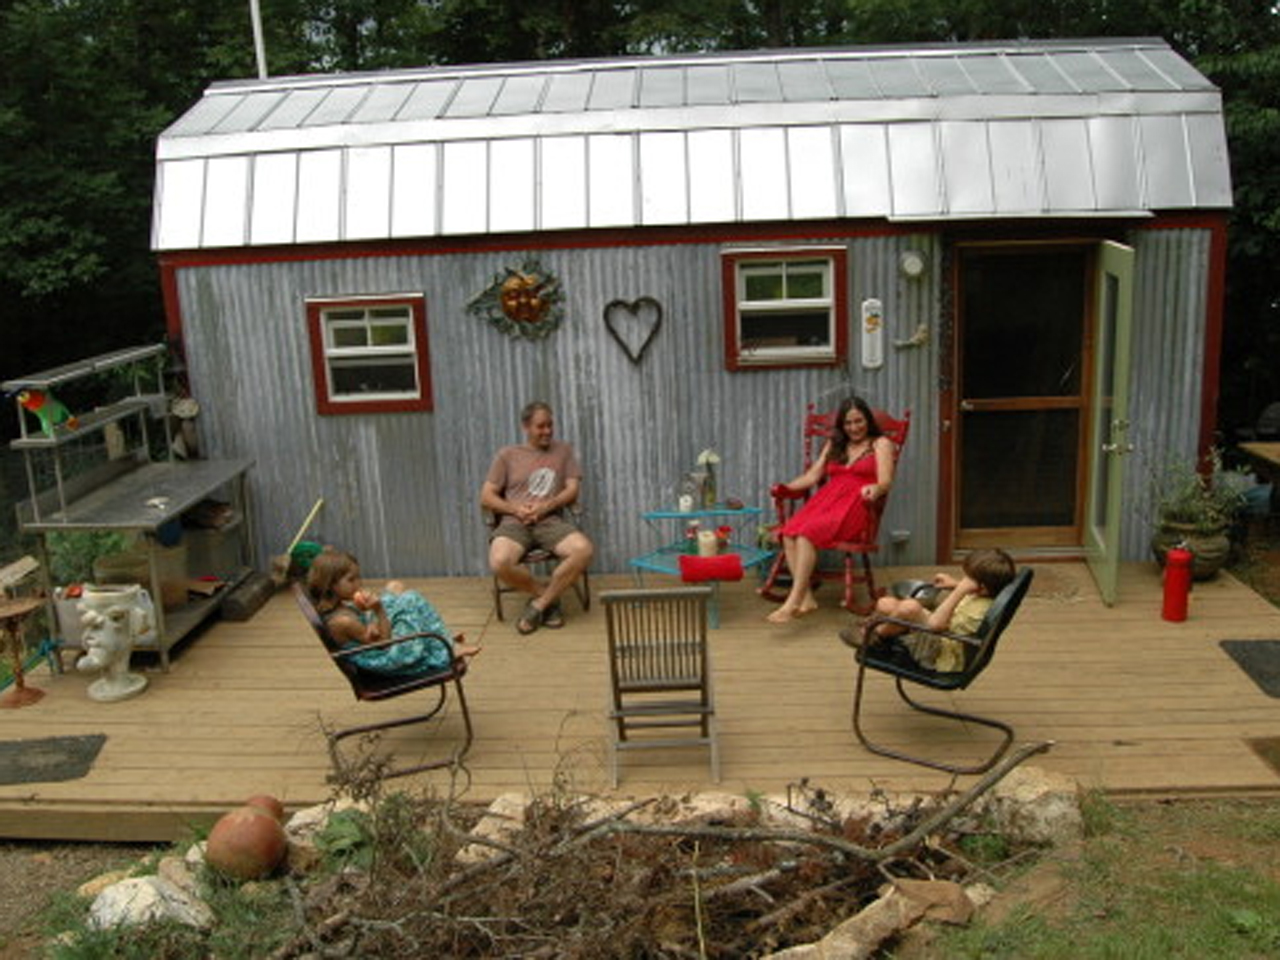 Tiny houses big lives how families make small spaces work in real life - Landscaping for small spaces gallery ...